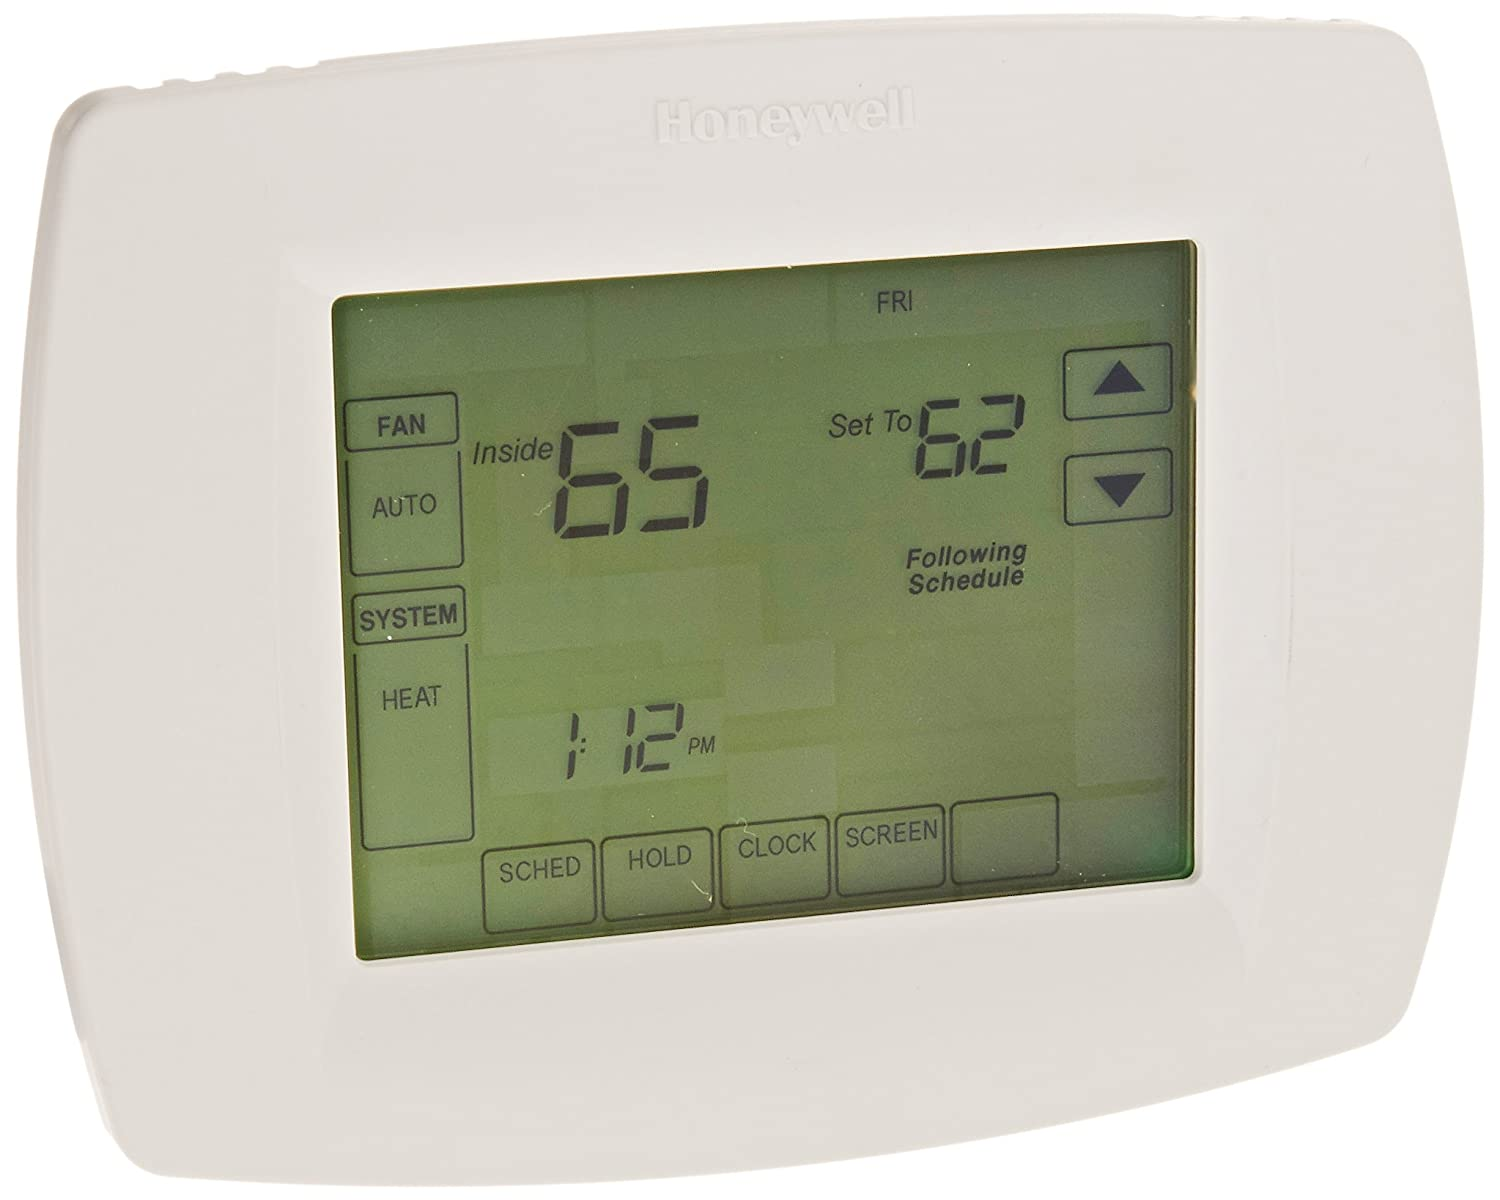 Honeywell TH8110U1003 Heat/Cool Digital Thermostat - Programmable Household  Thermostats - Amazon.com